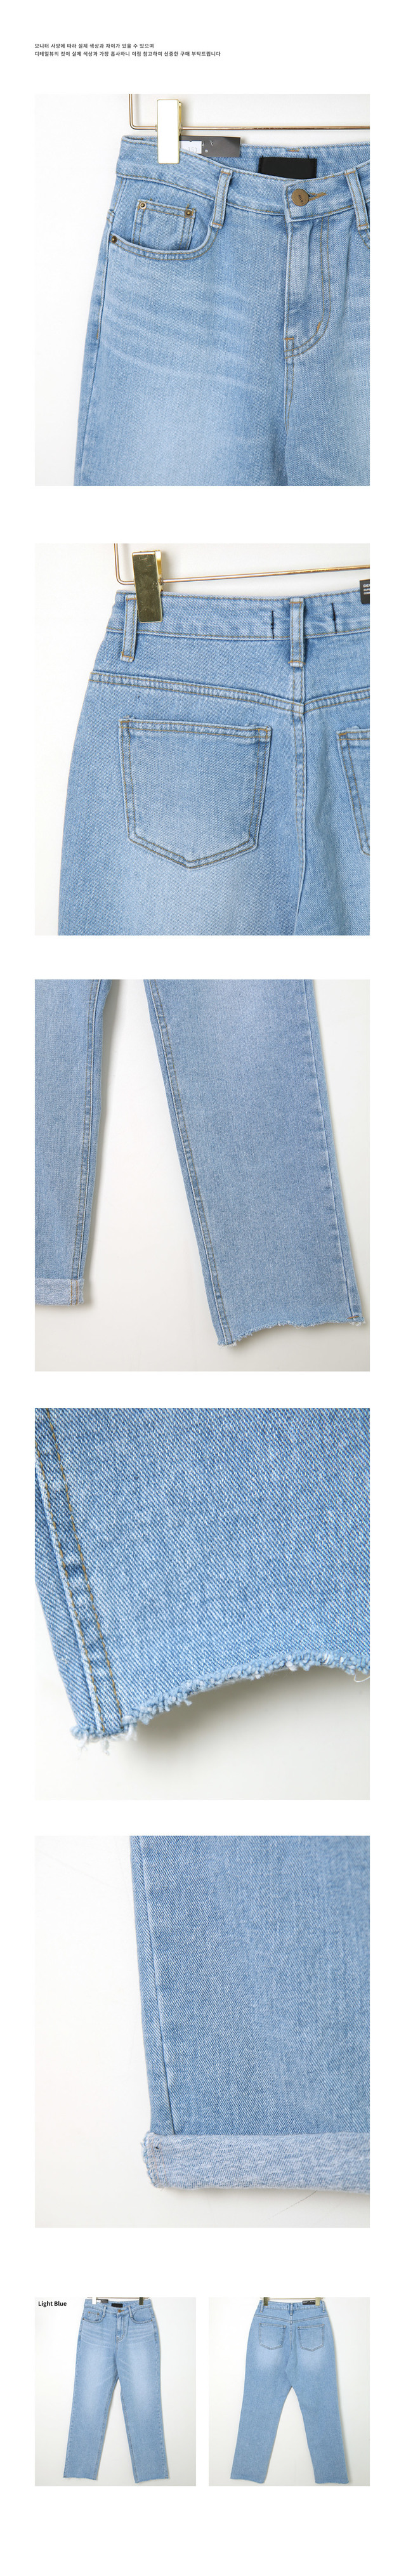 Snow exhaust denim pants